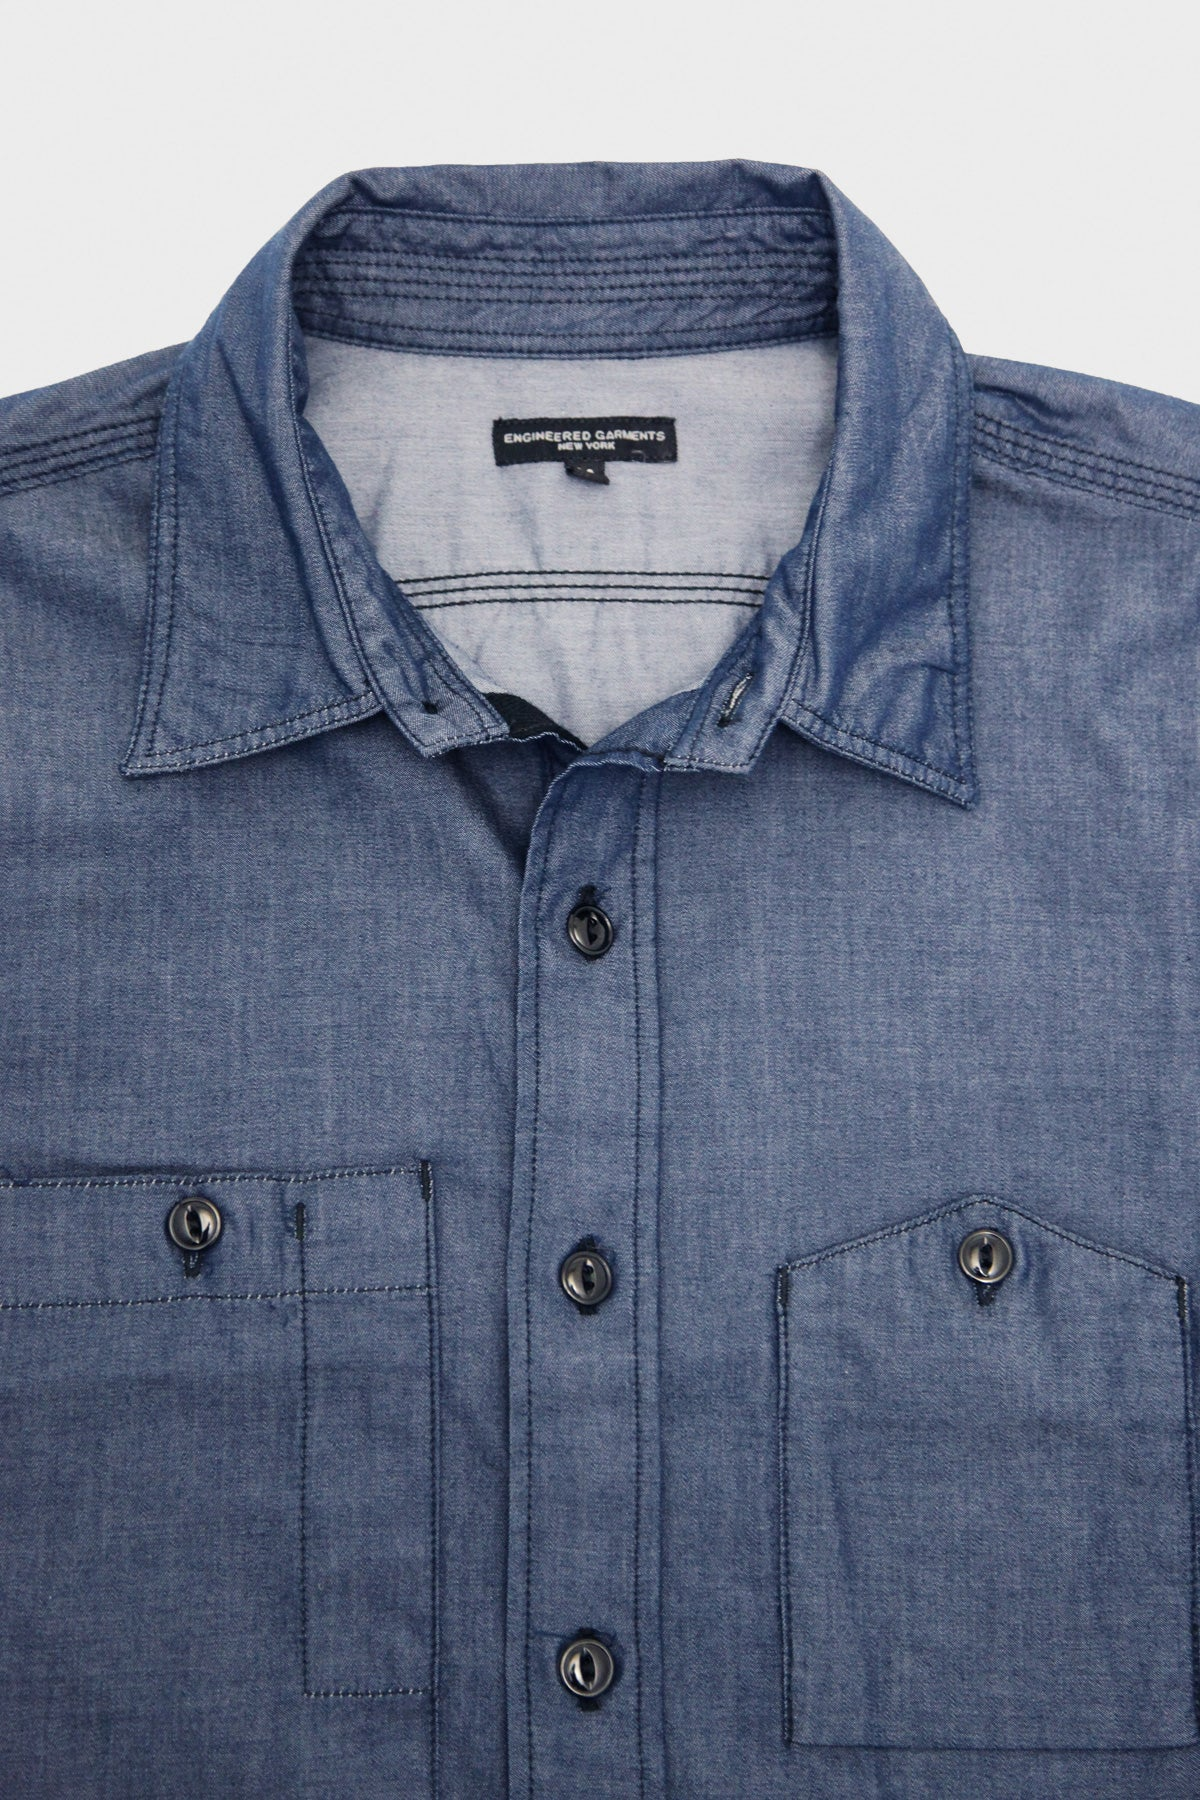 Engineered Garments - Work Shirt - Dark Blue Light Weight Denim - Canoe Club